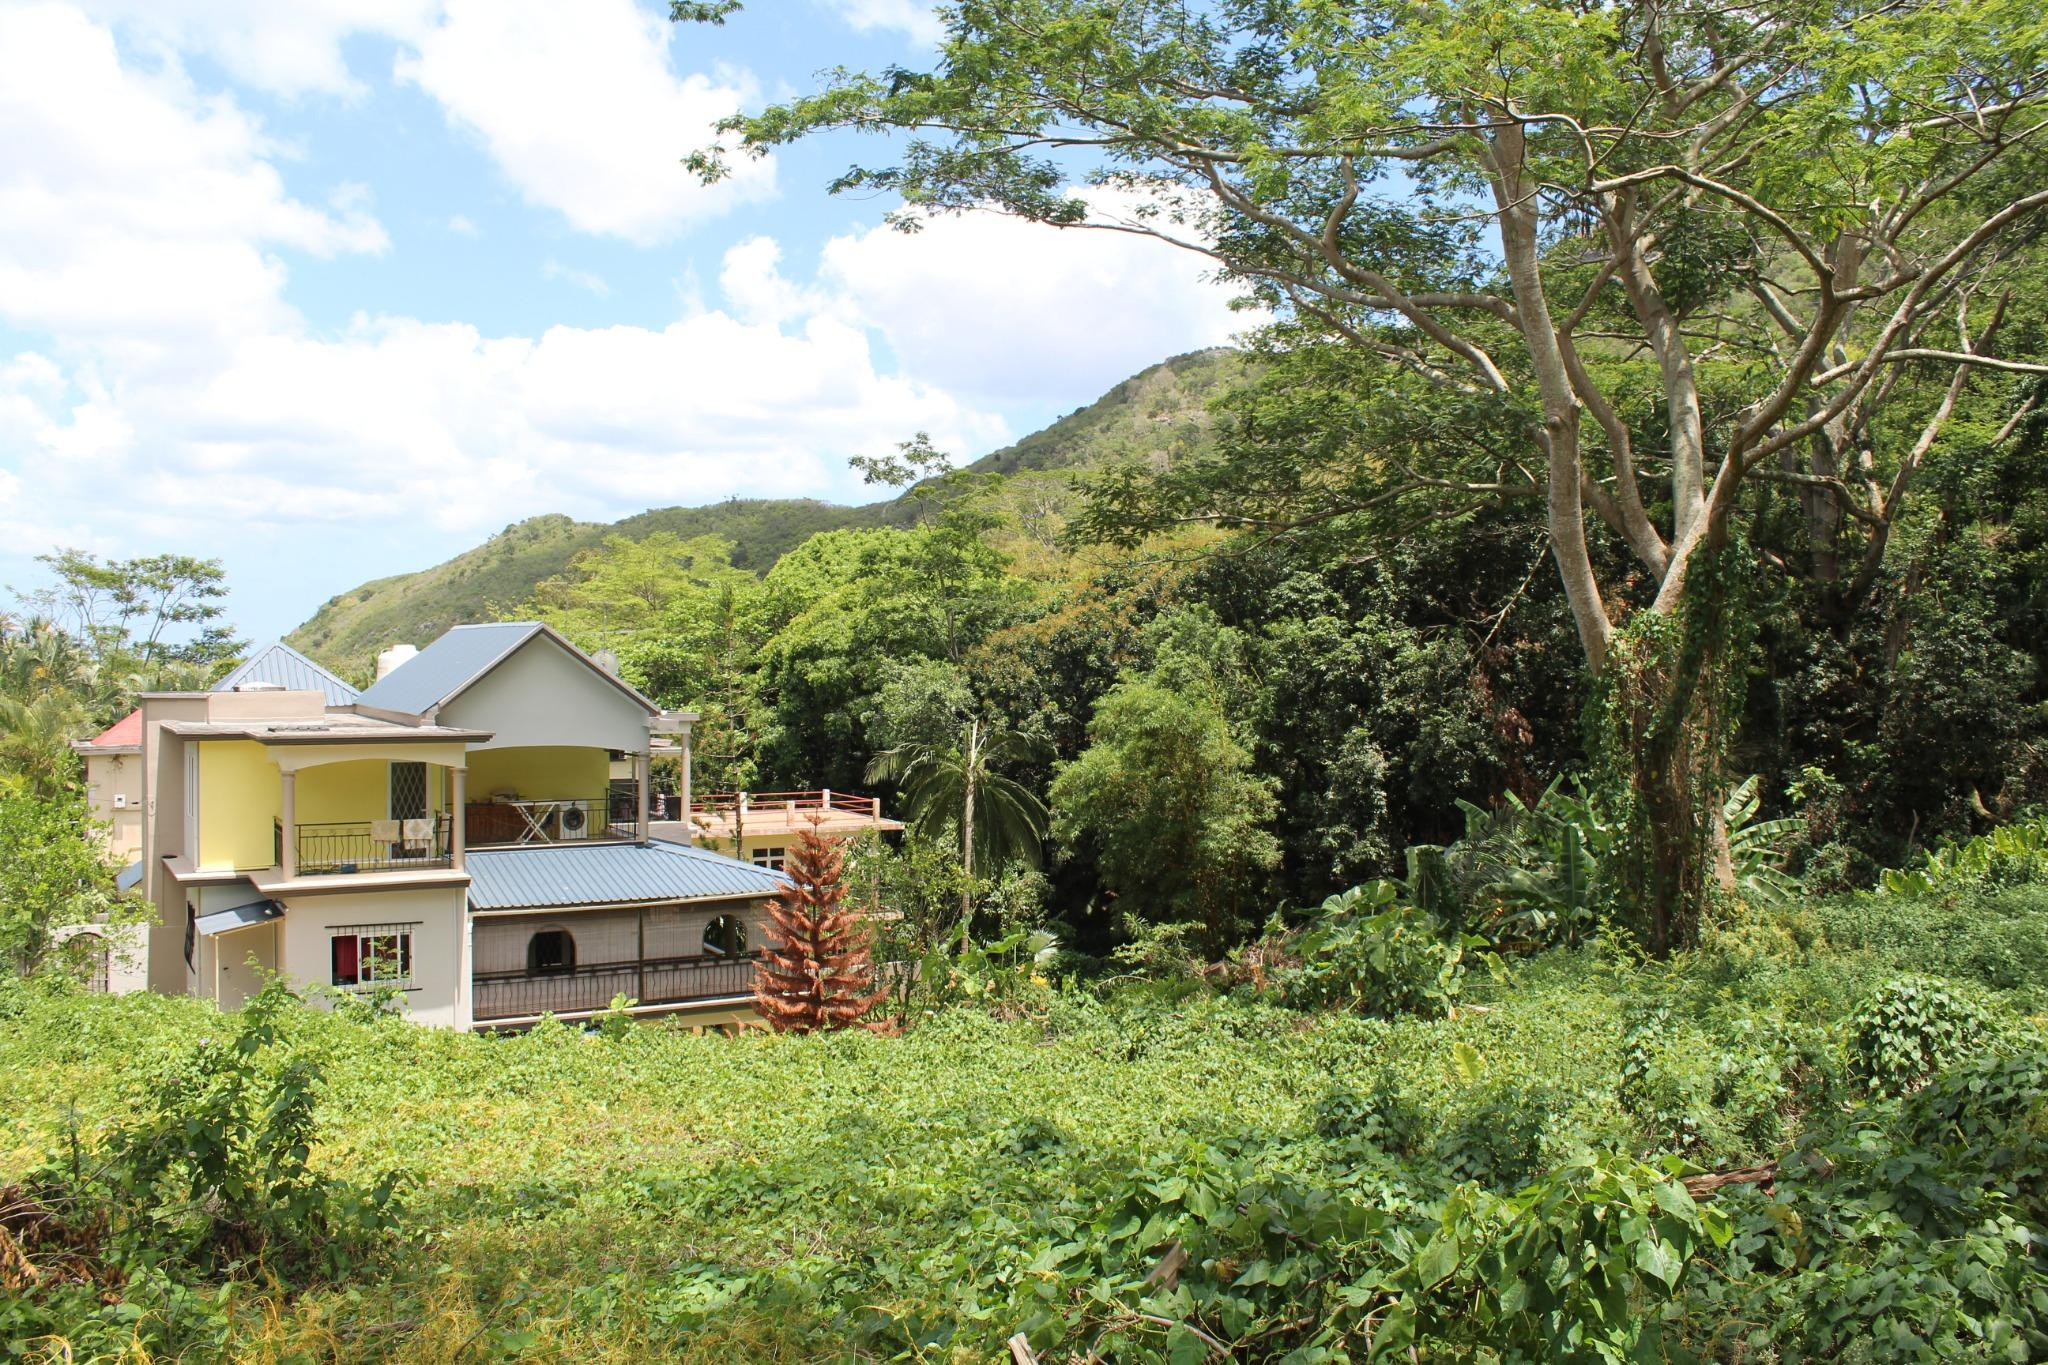 FO SALE – Beautiful residential land of 375 toises located in Moka